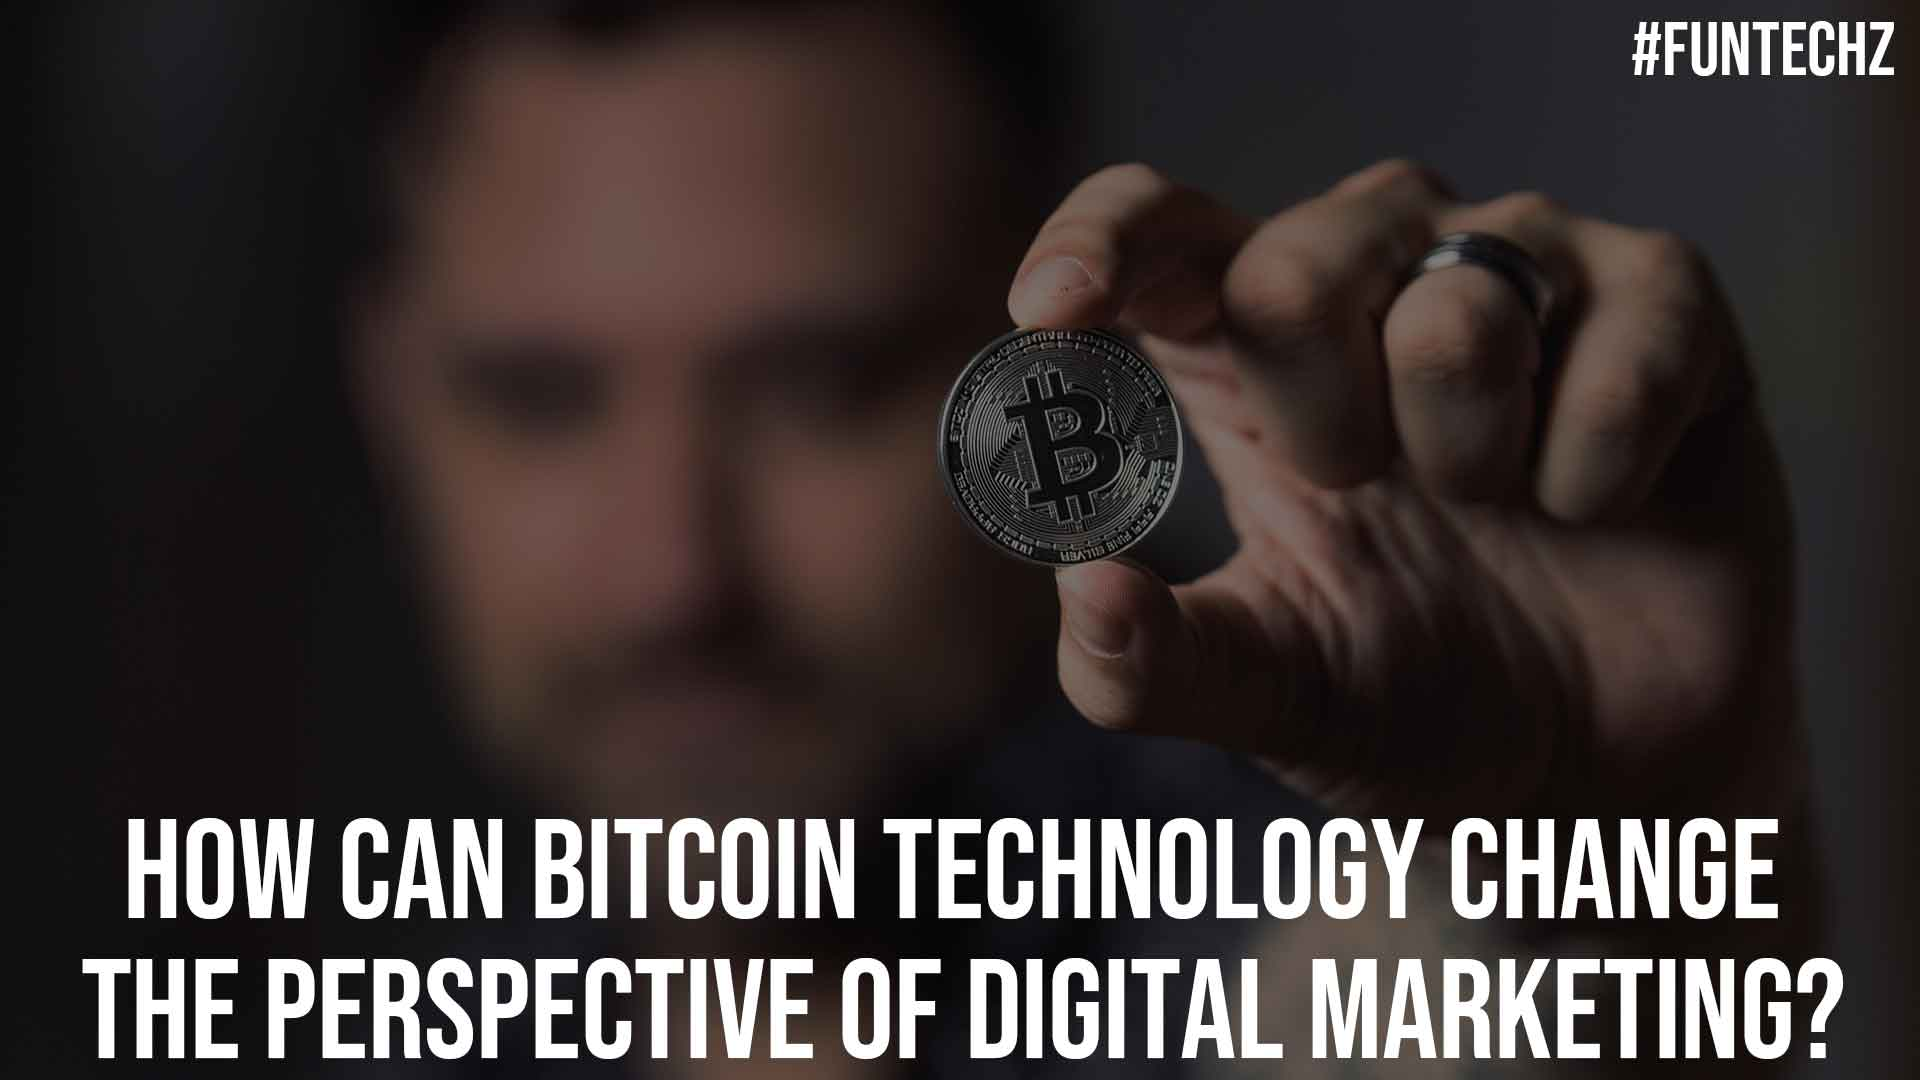 How Can Bitcoin Technology Change the Perspective of Digital Marketing